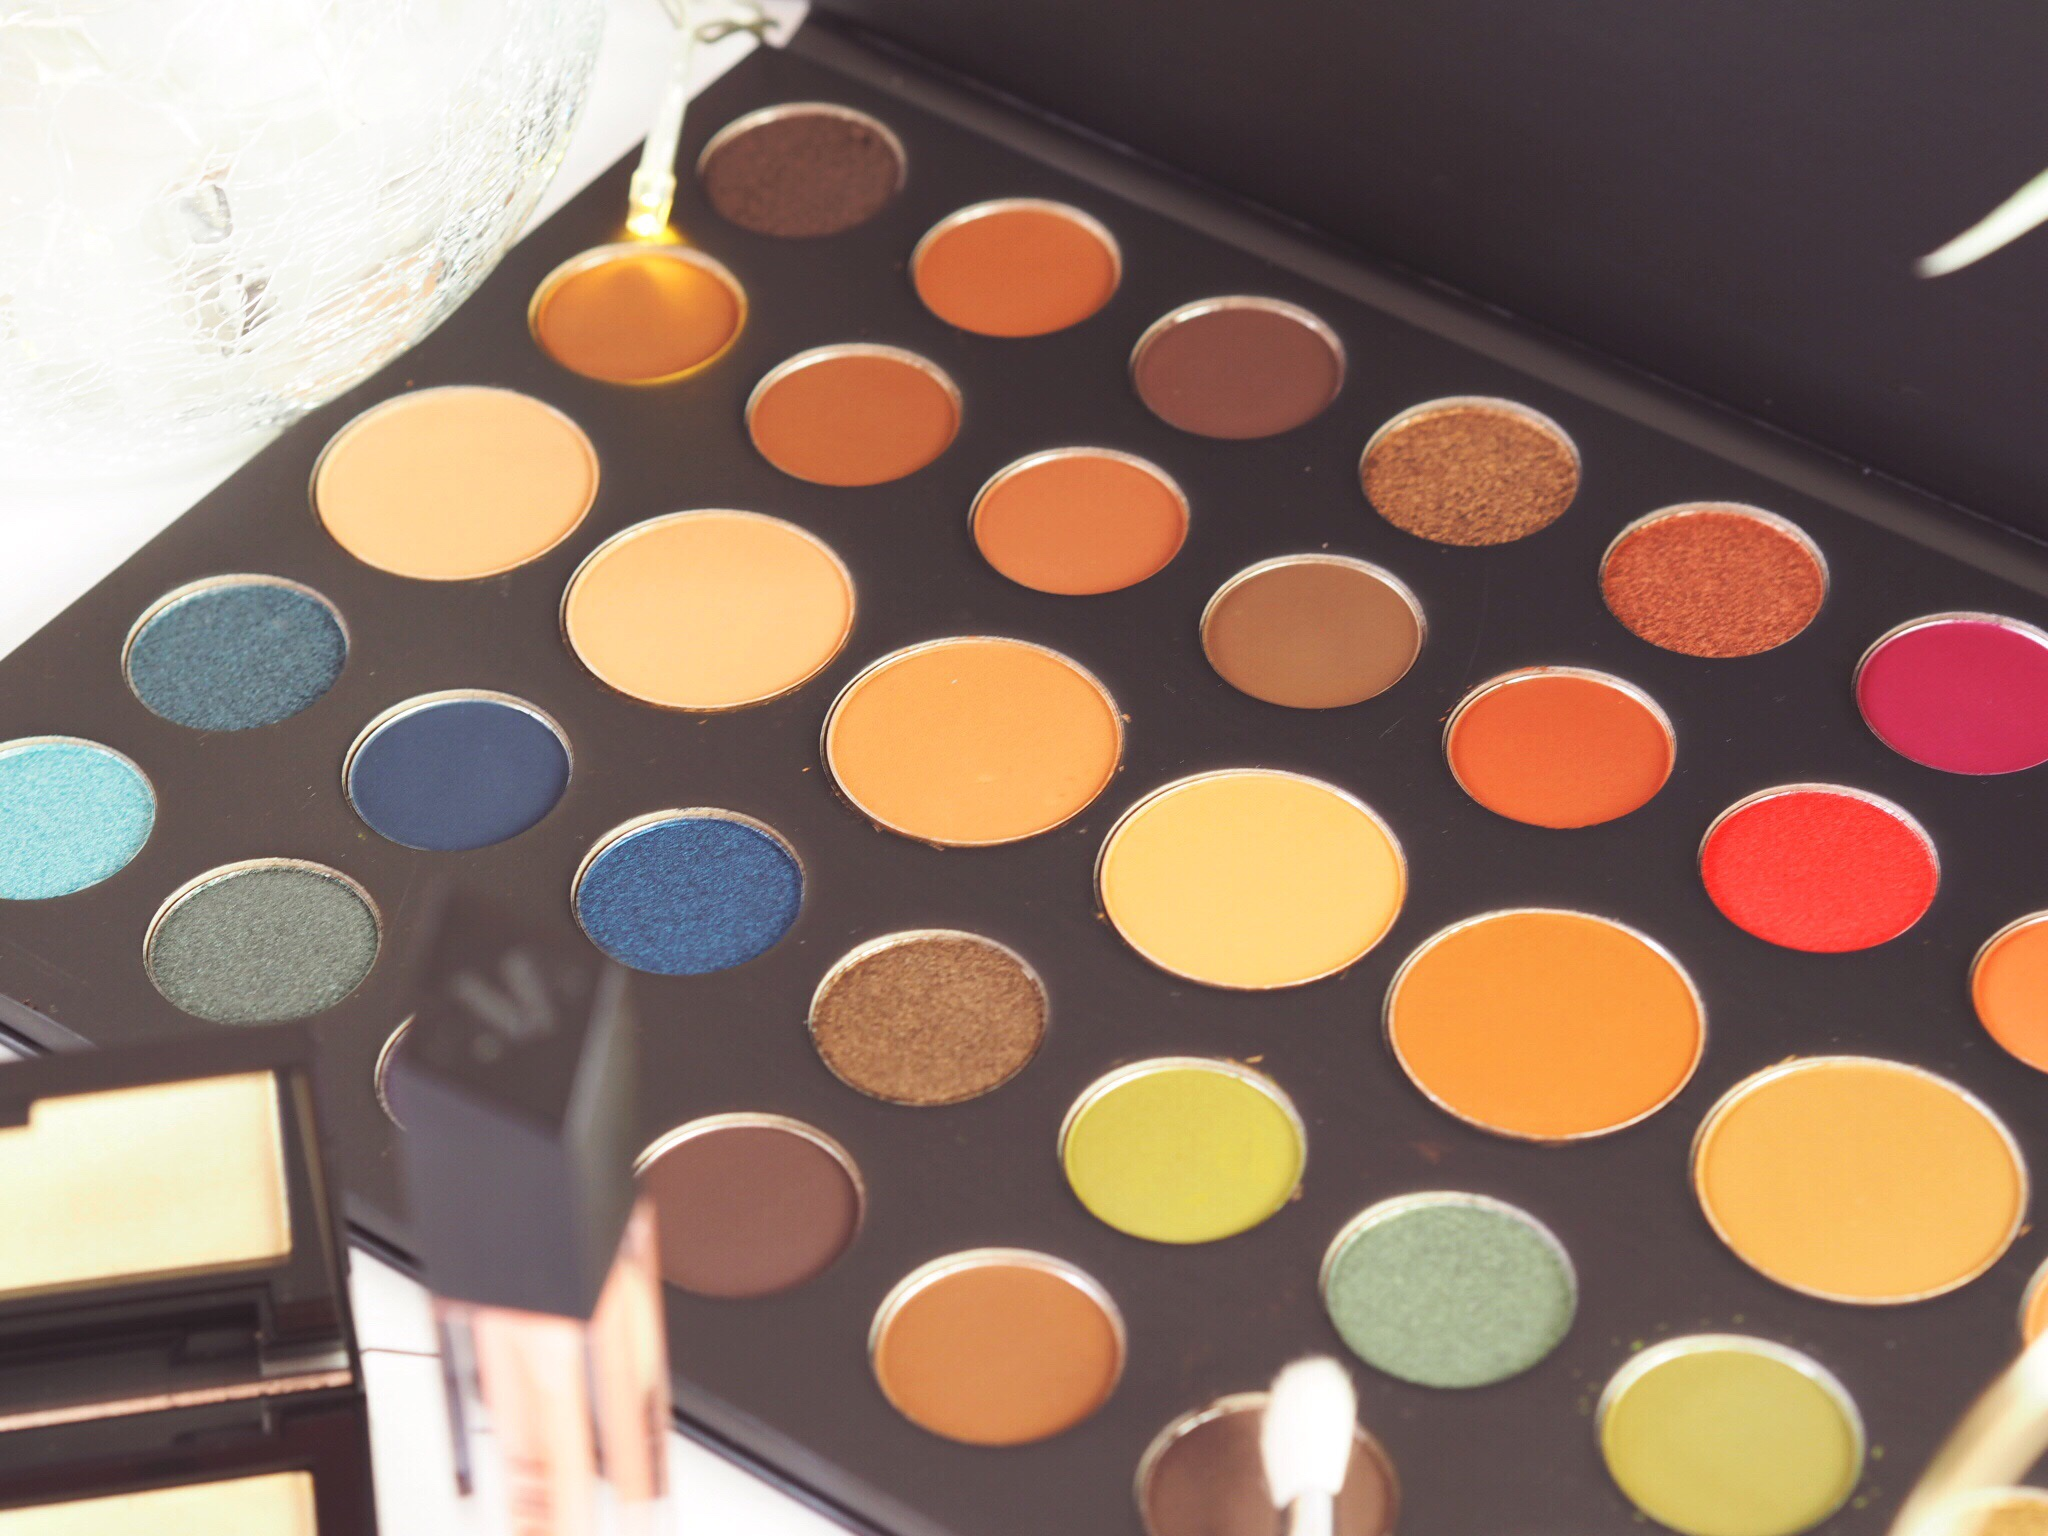 Morphe 39A Dare To Create Artistry Eyeshadow Palette Review